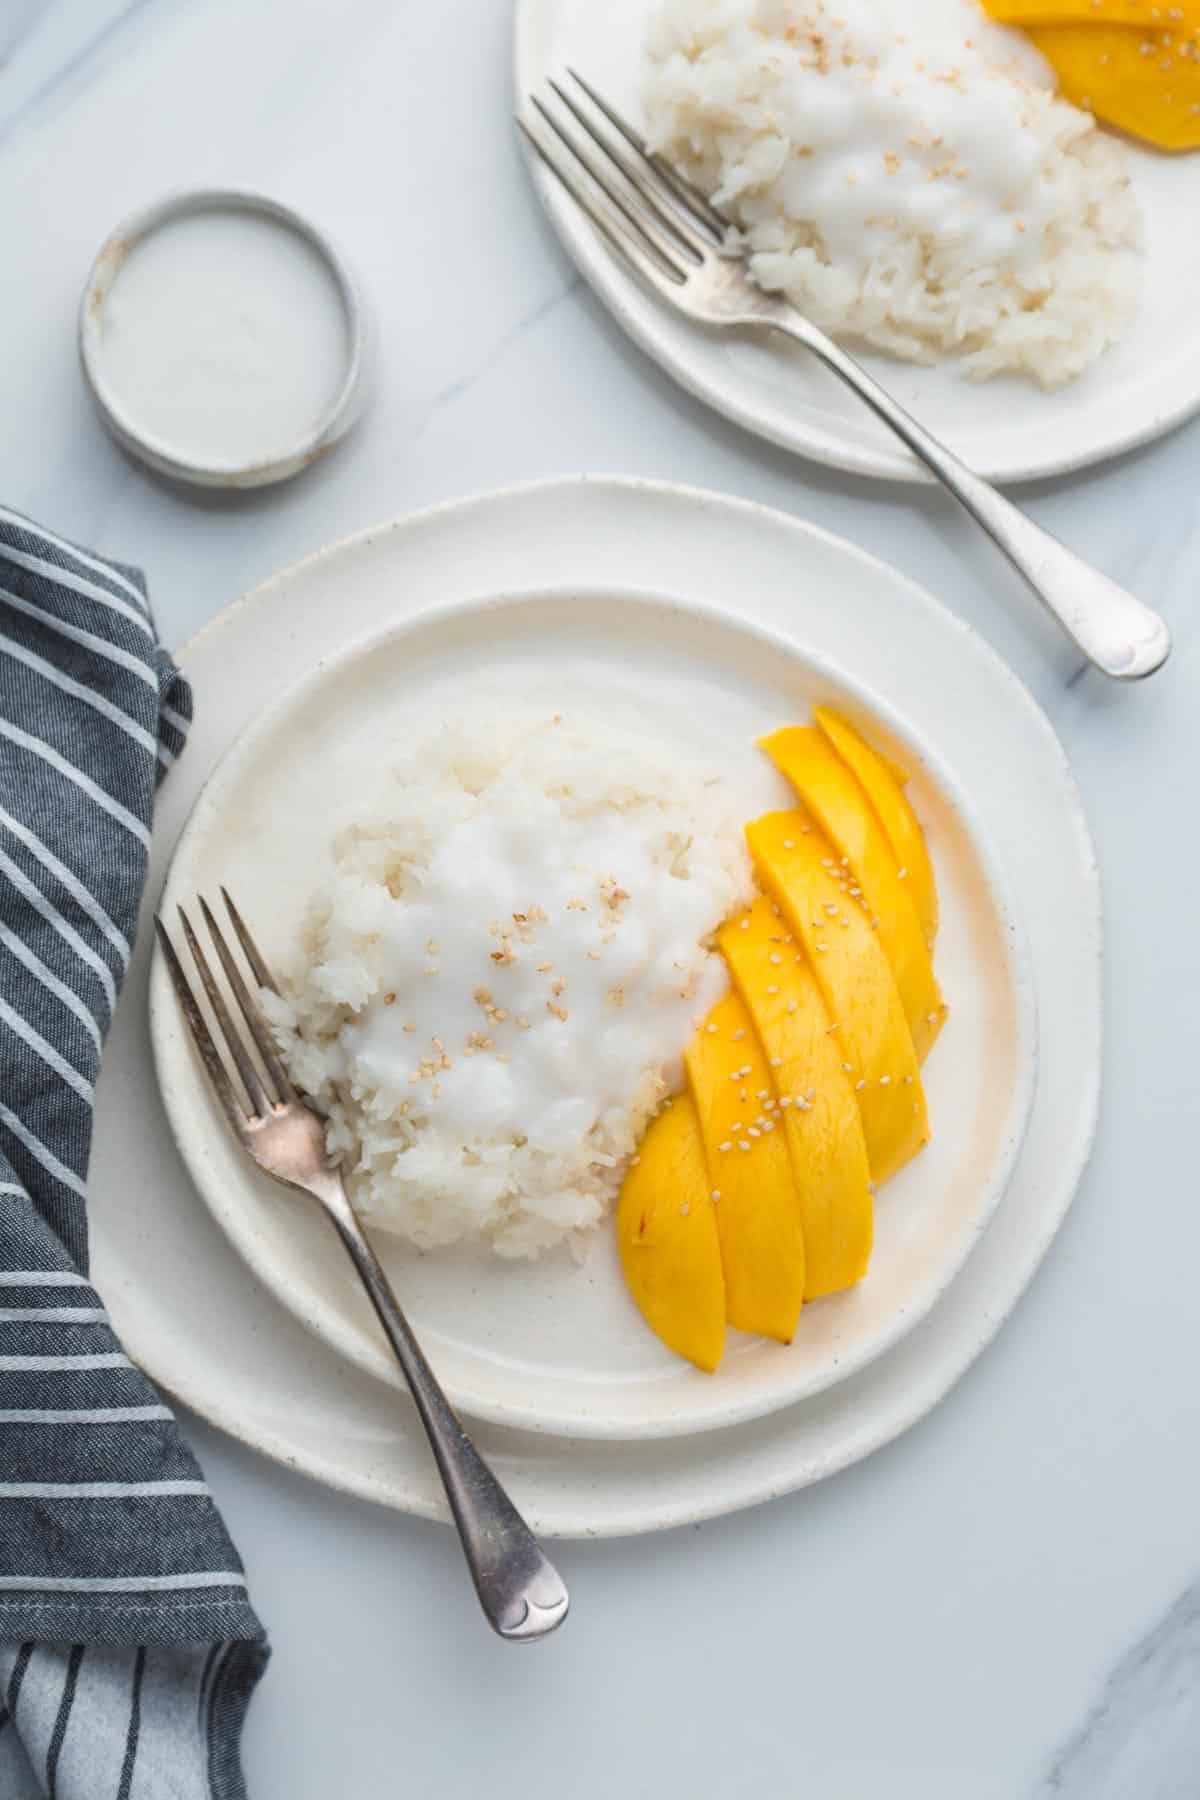 2 white plates with mango sticky rice, and 2 forks